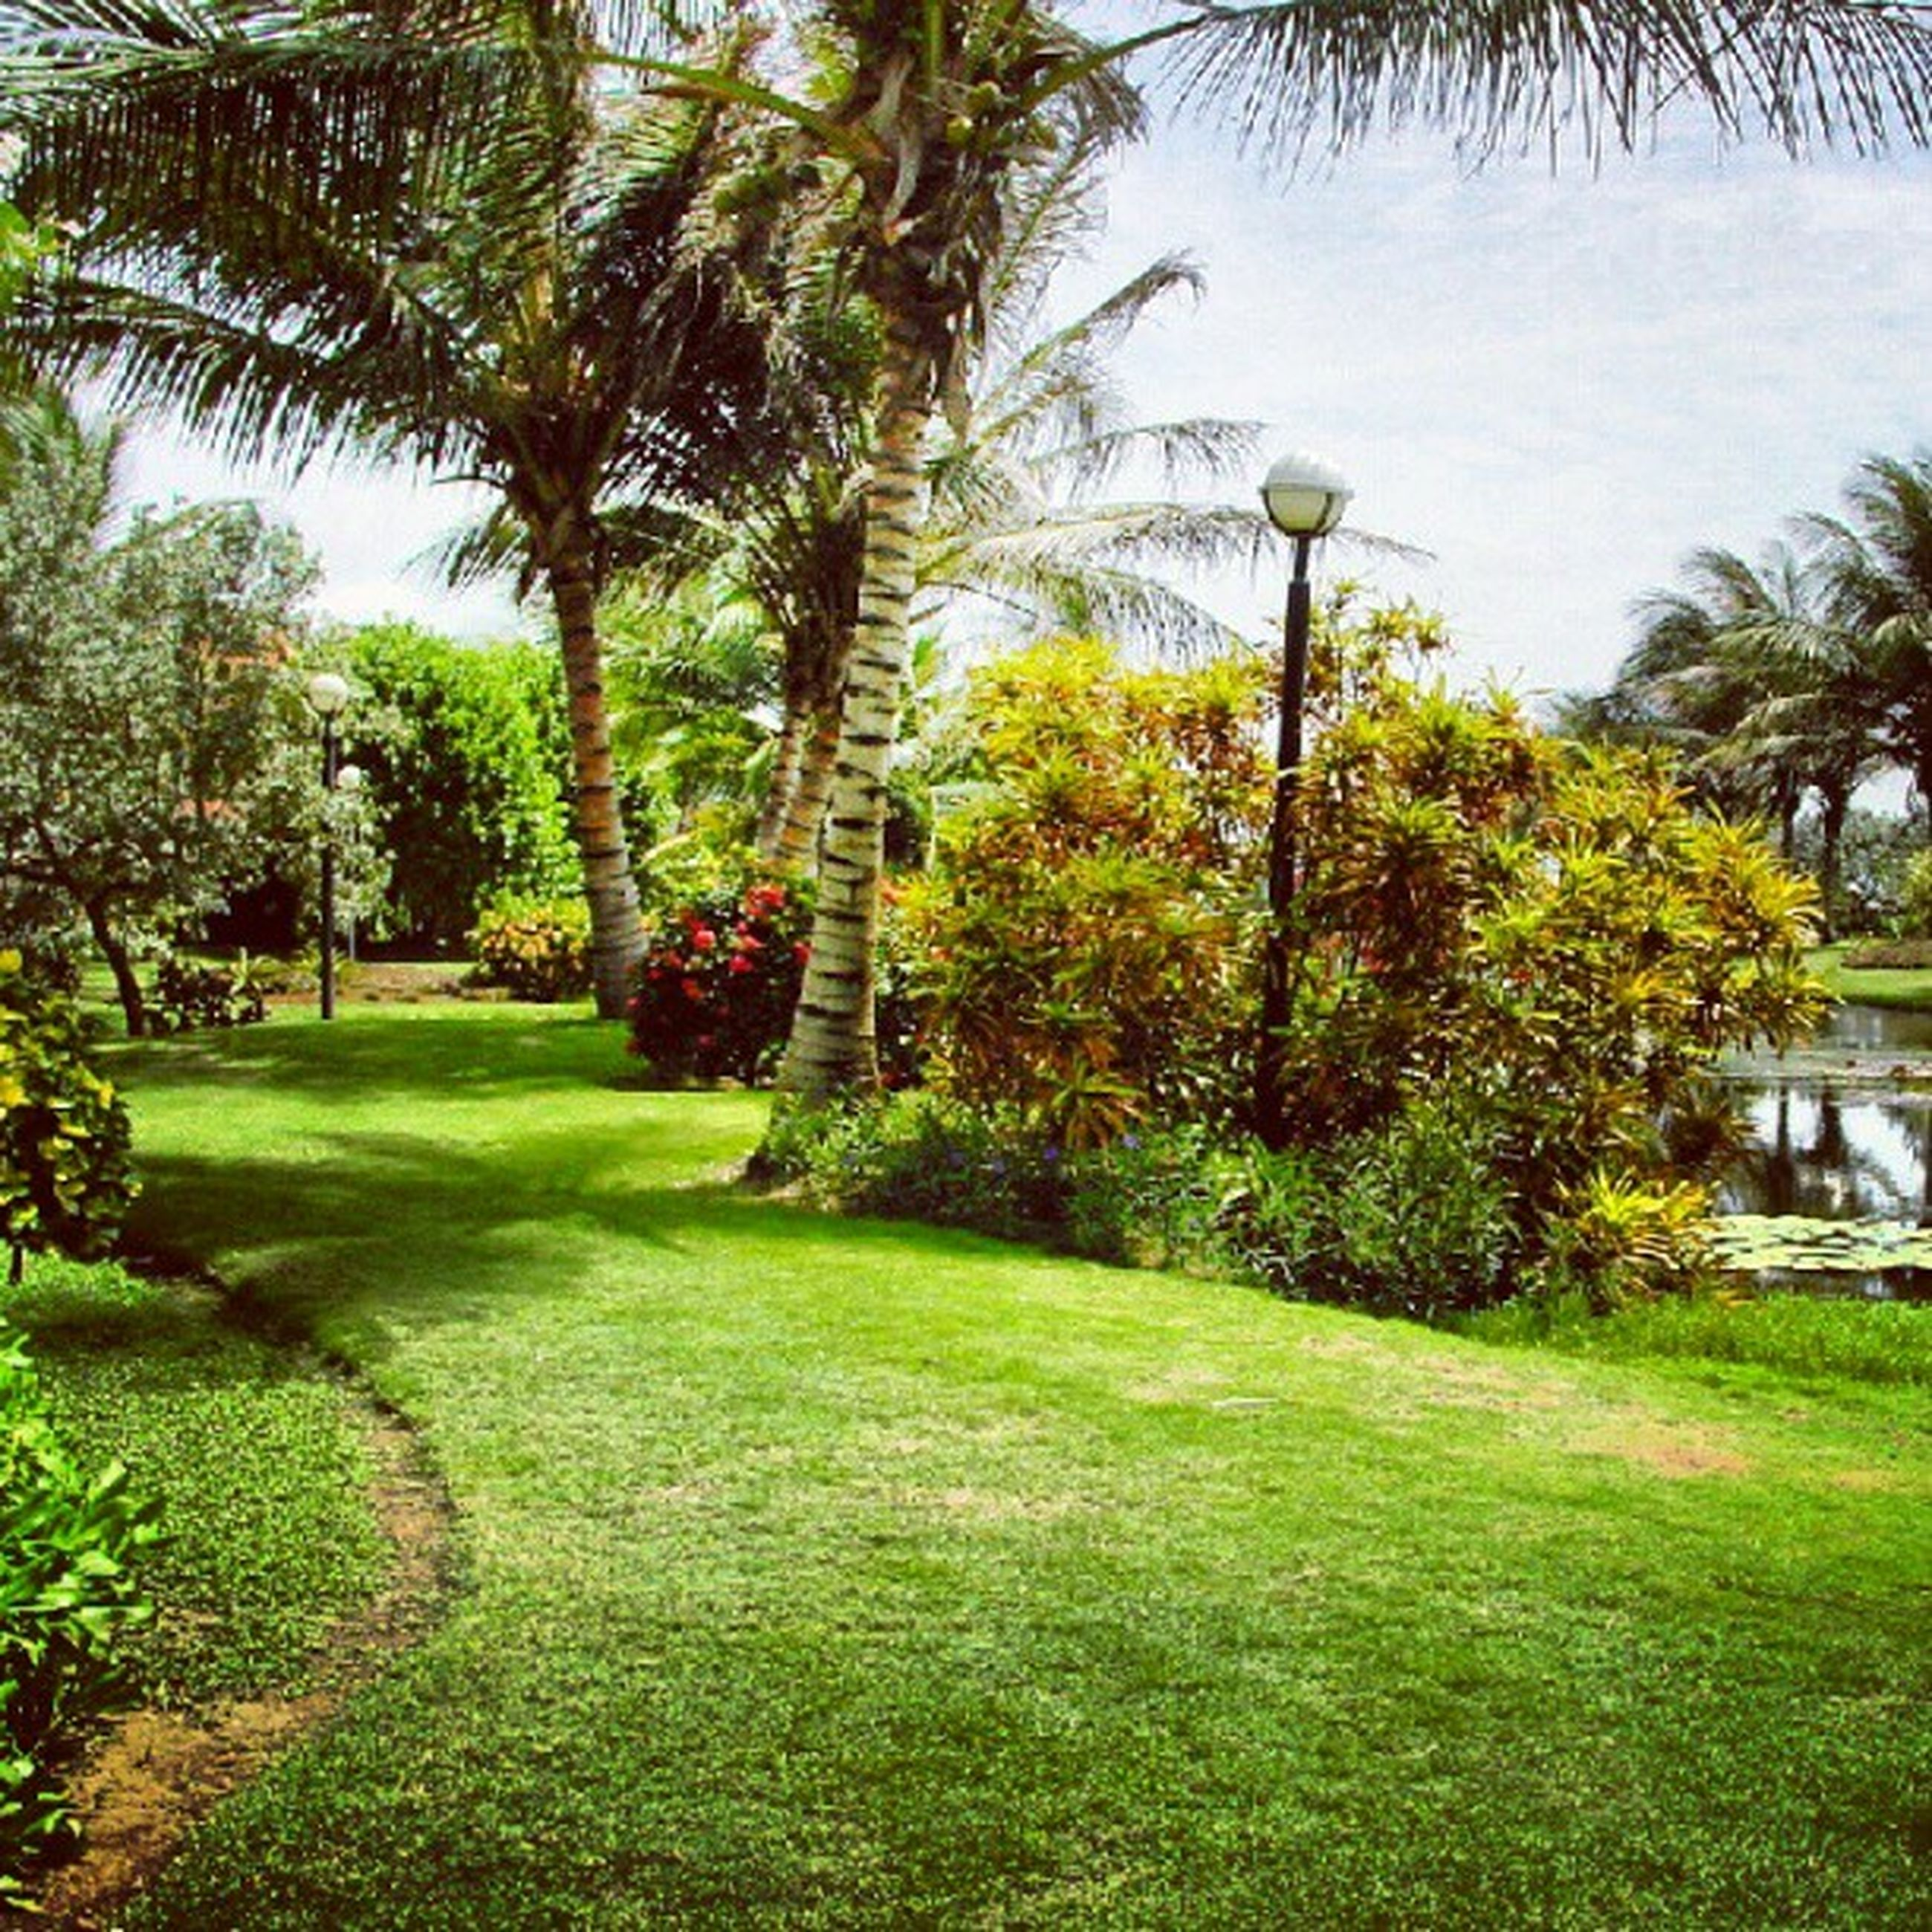 tree, green color, grass, growth, park - man made space, tree trunk, palm tree, tranquility, nature, branch, beauty in nature, tranquil scene, scenics, park, green, sunlight, lawn, sky, day, footpath